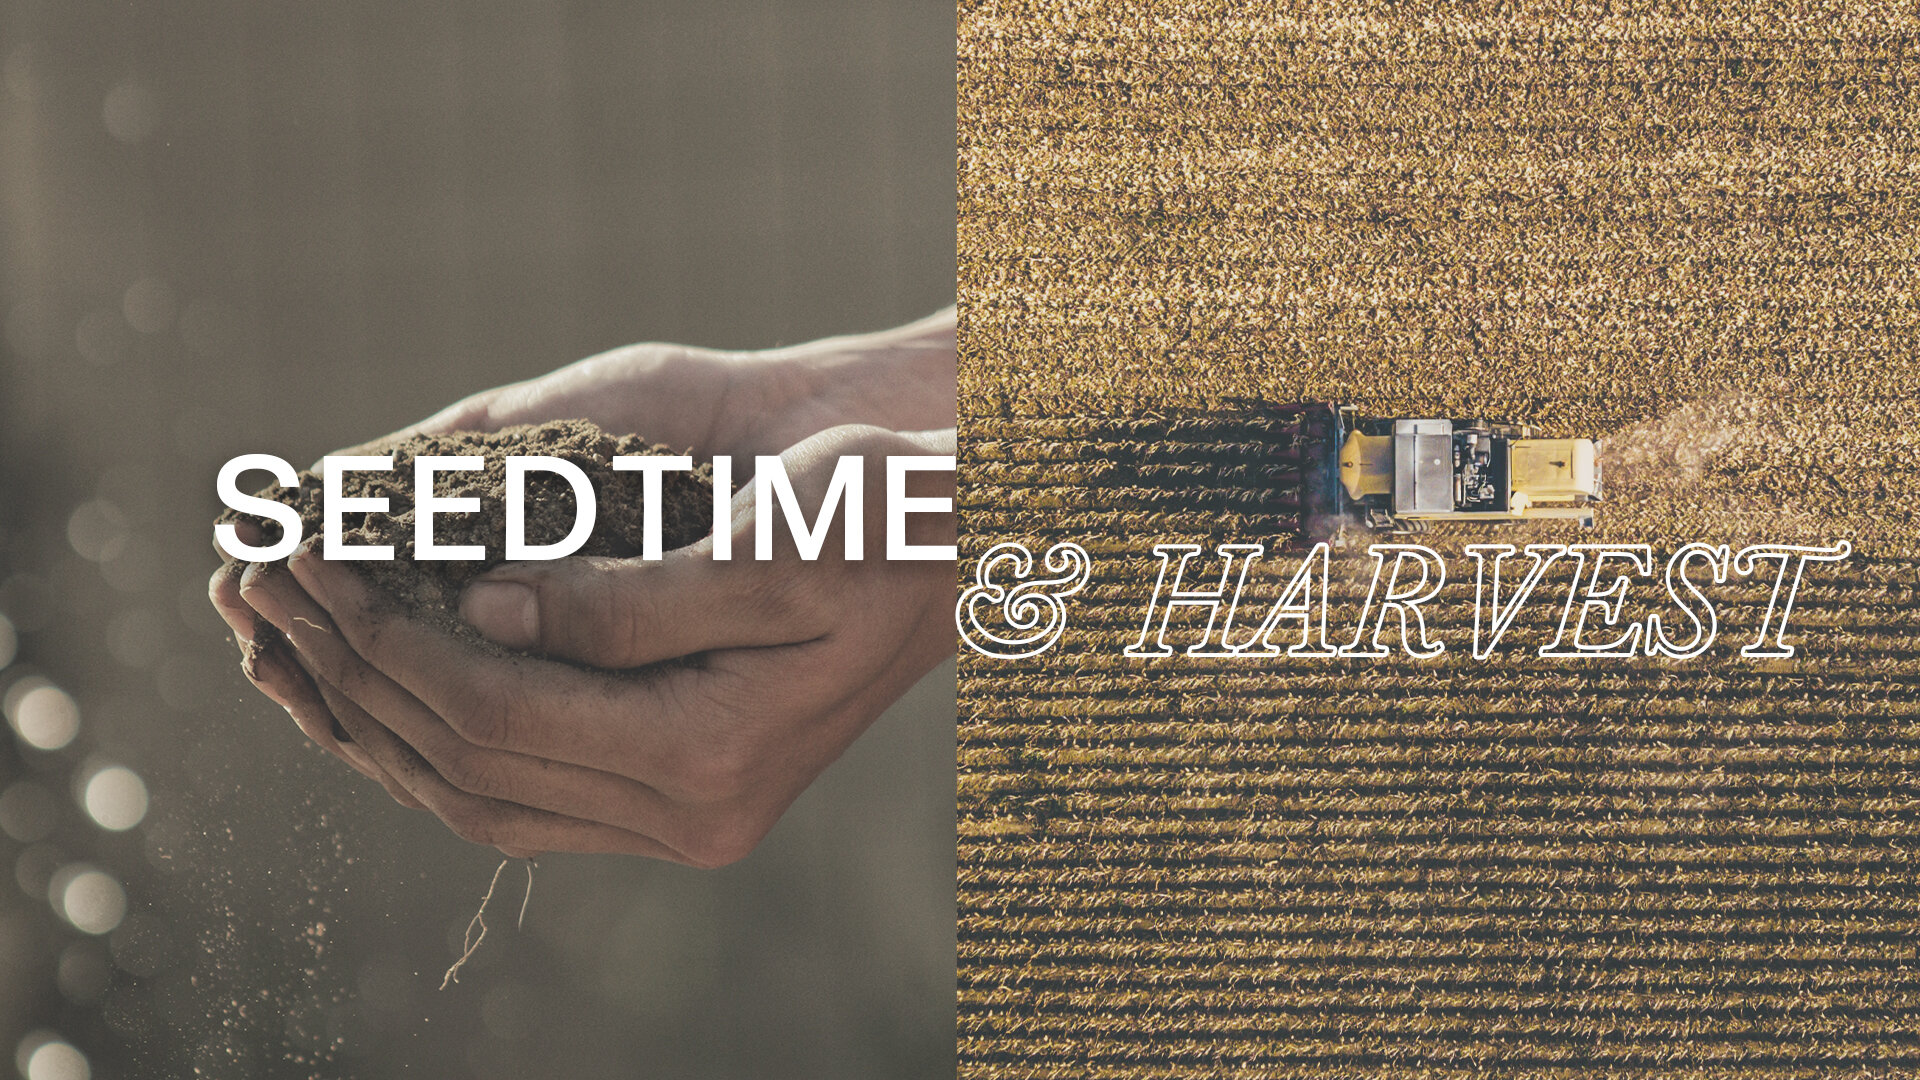 Seedtime and Harvest Graphic.jpg